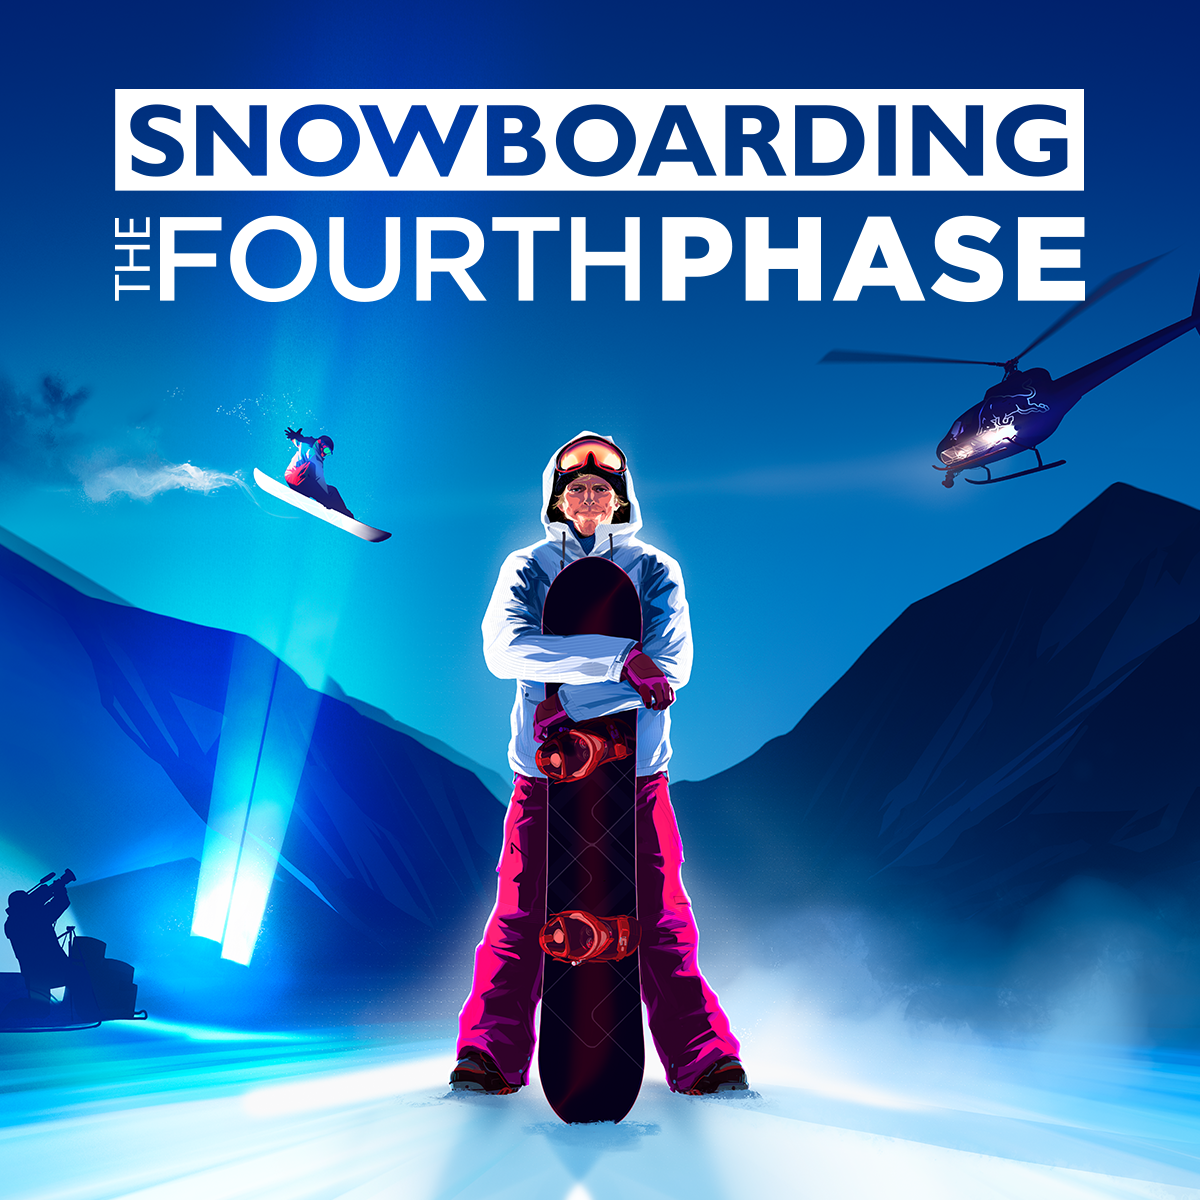 Get ready to shred in Snowboarding The Fourth Phase